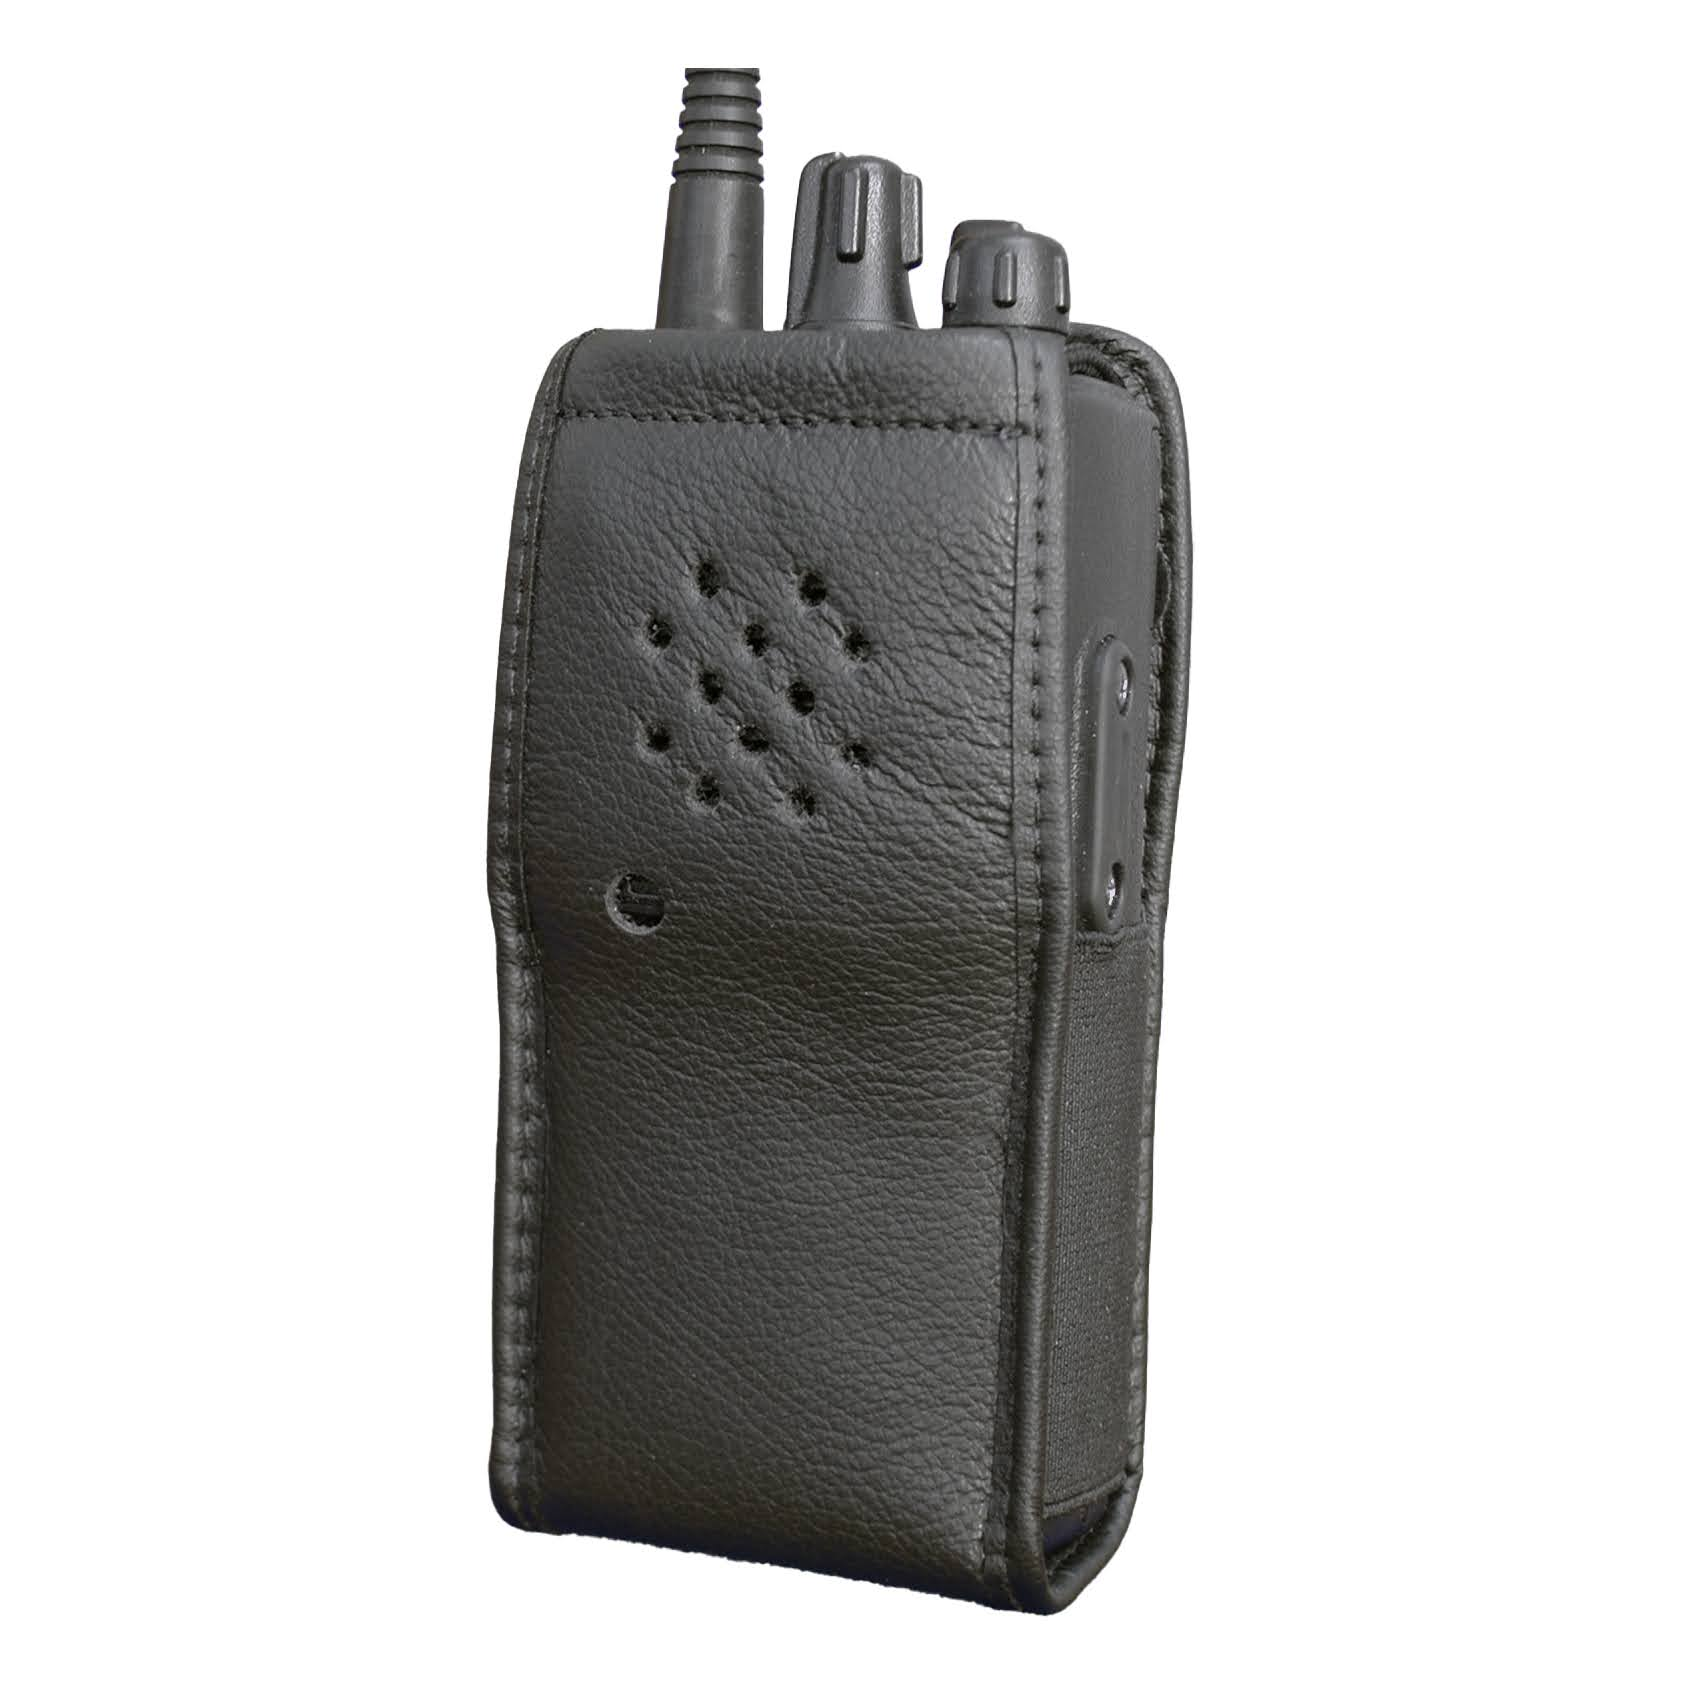 Vertex VX160 Leather Radio Case